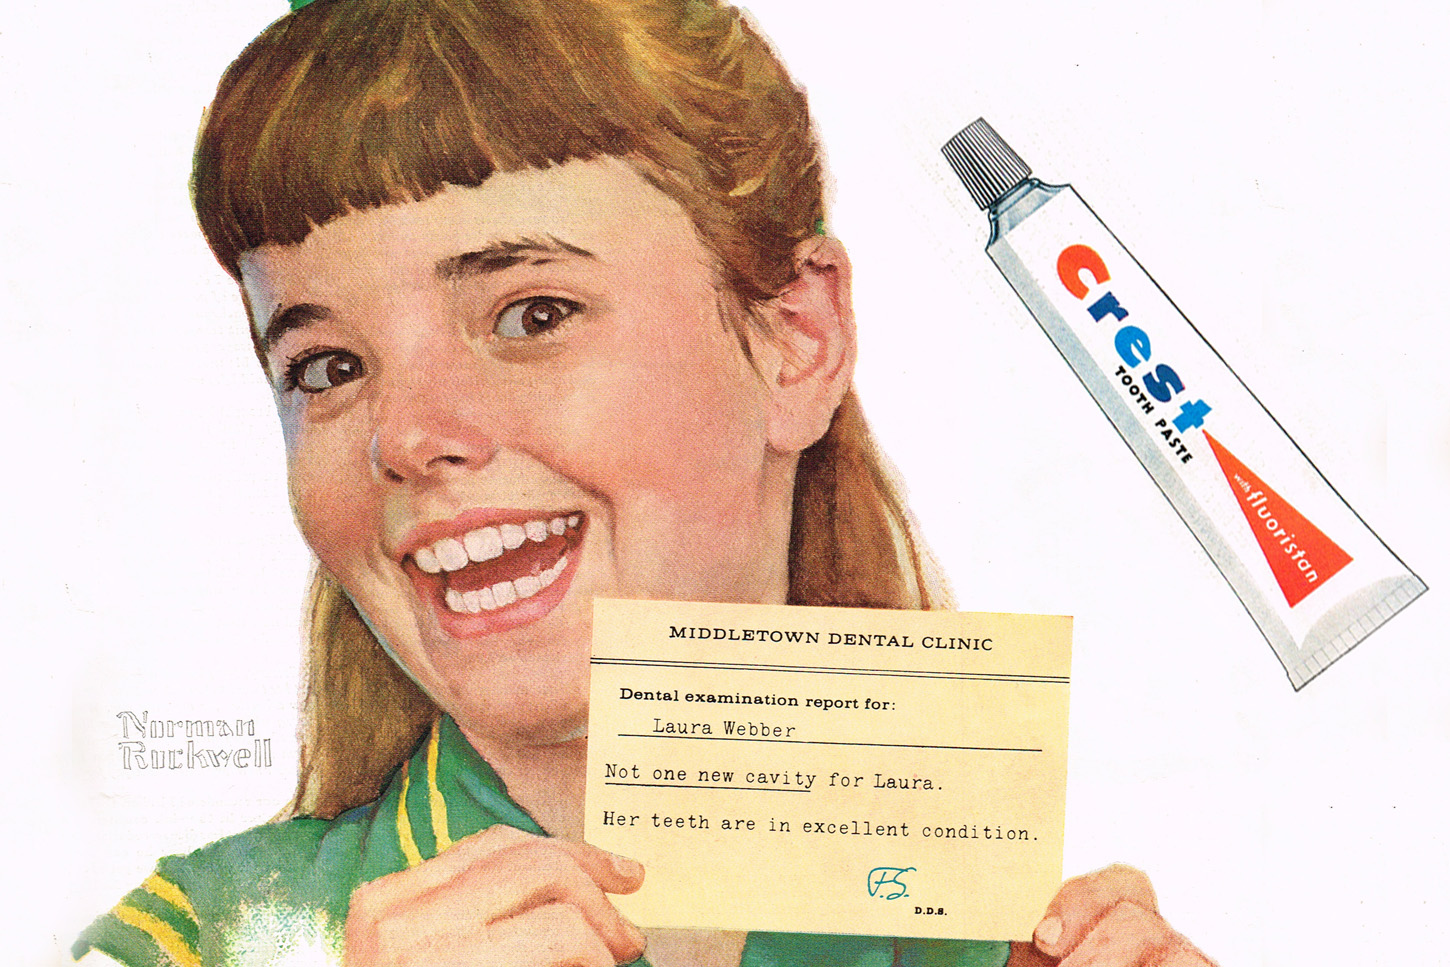 A vintage ad for Crest toothpaste